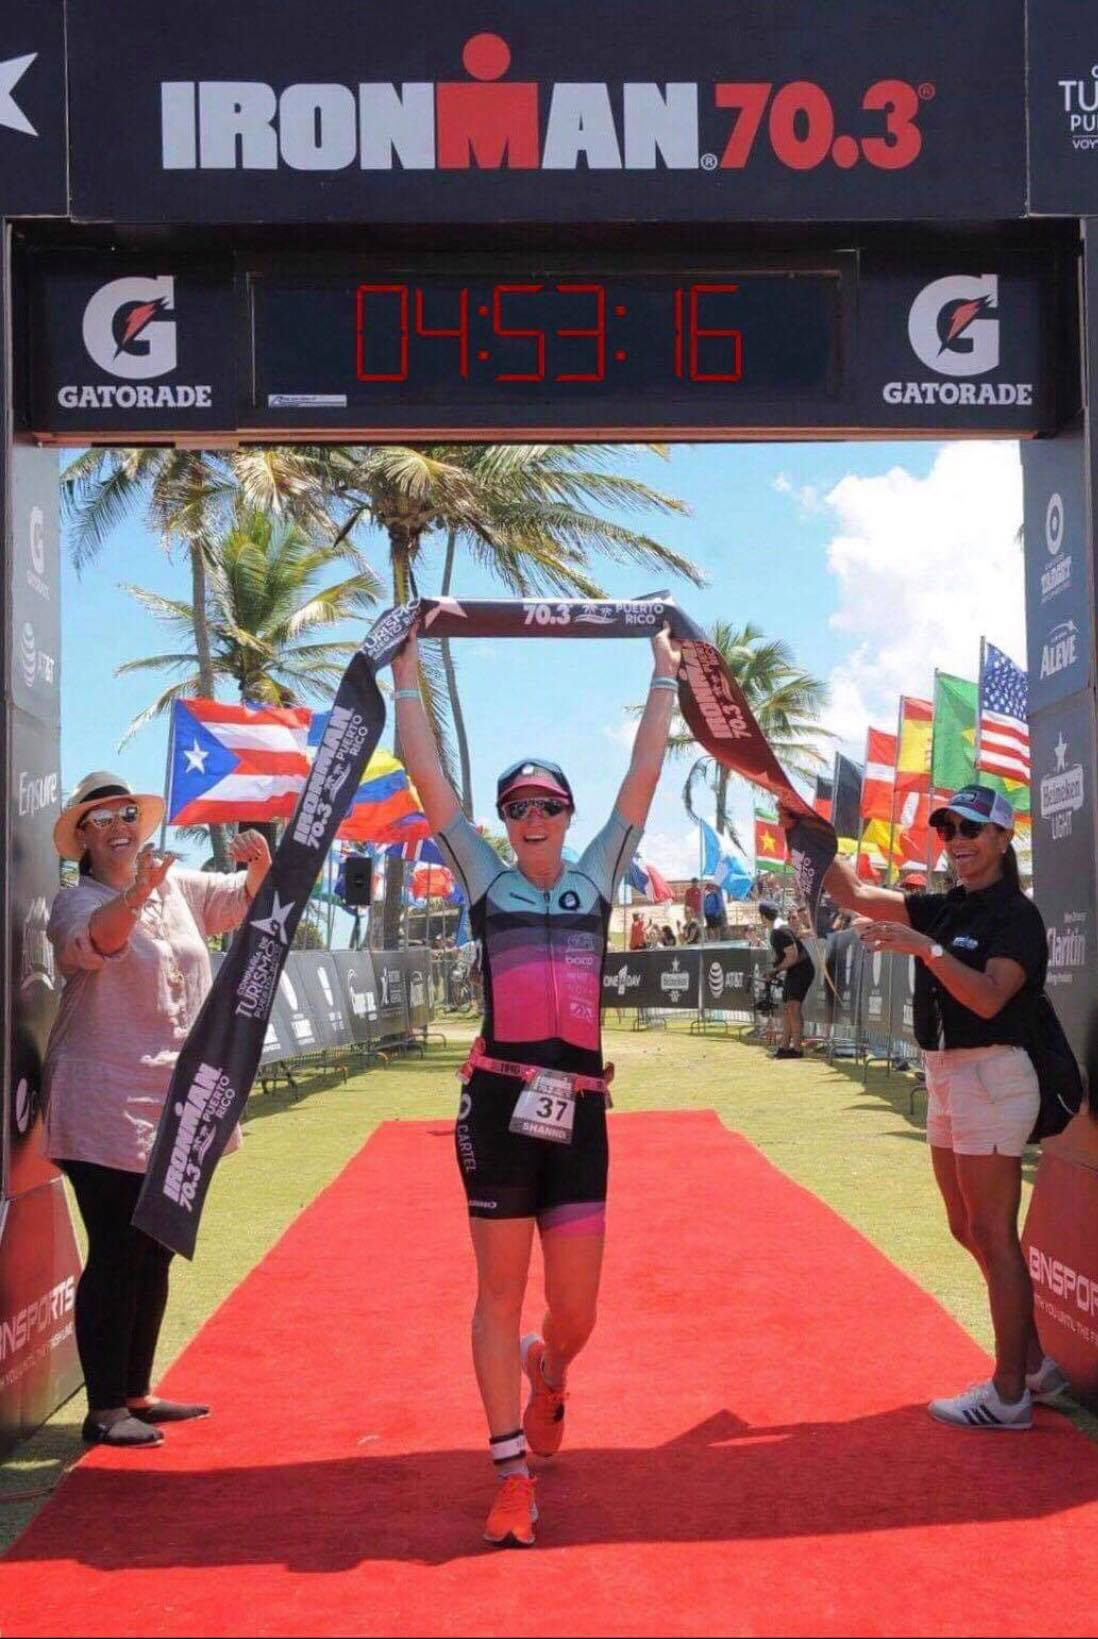 Coach_Terry_Wilson_Pursuit_of_The_Perfect_Race_IRONMAN_Puerto_Rico_Shannon_Florea_6.jpg